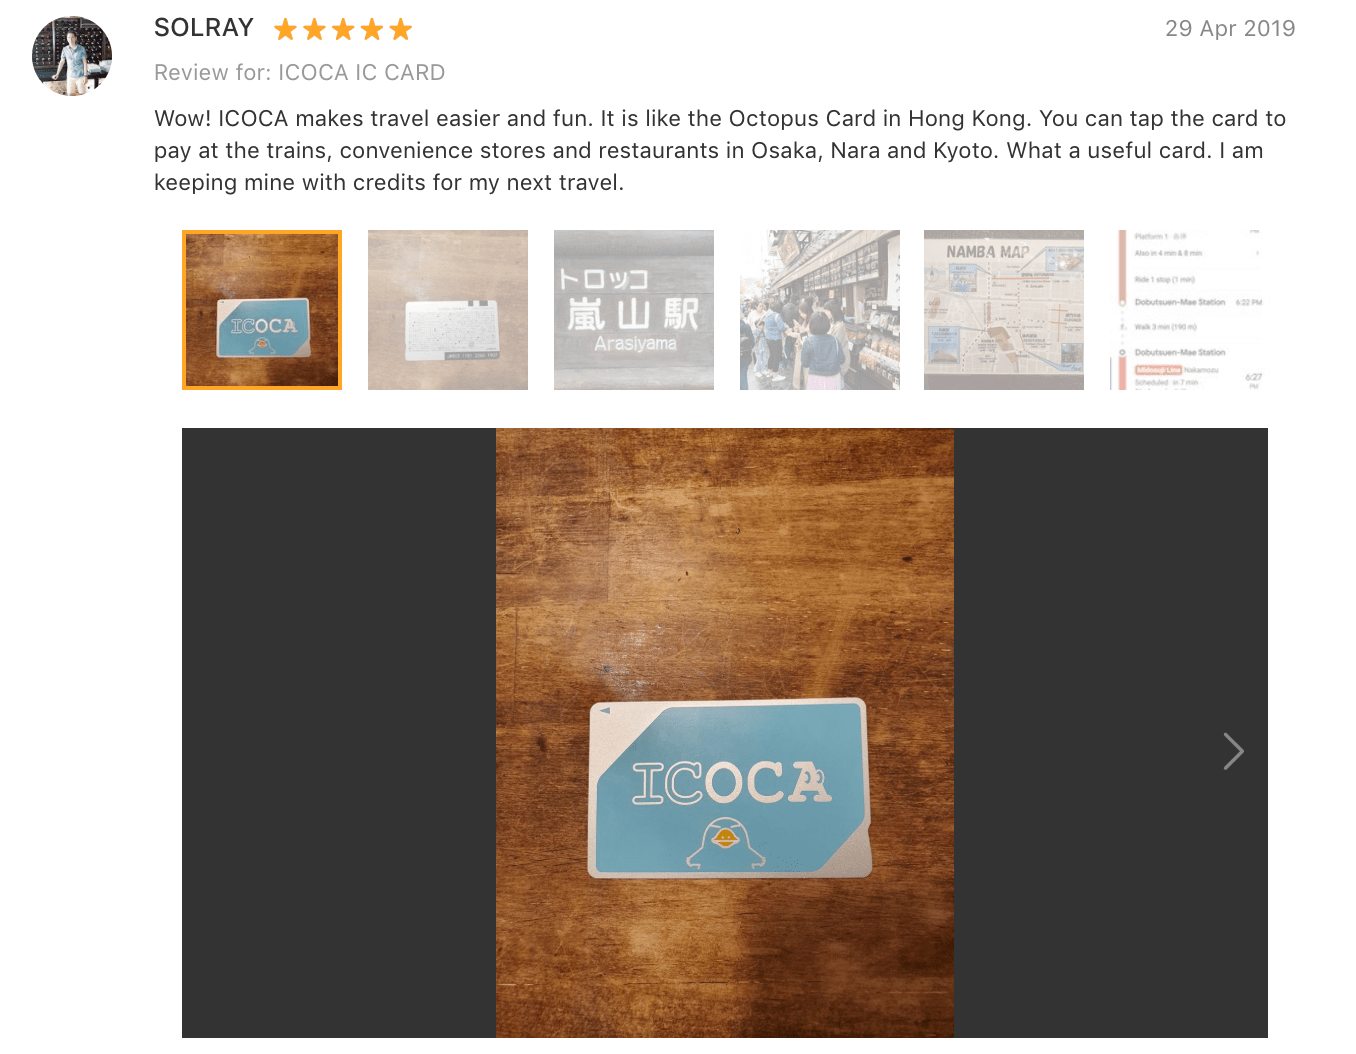 'Wow! ICOCA makes travel easier and fun. It is like the Octopus Card in Hong Kong. You can tap the card to pay at the trains, convenience stores and restaurants in Osaka, Nara and Kyoto. What a useful card. I am keeping mine with credits for my next travel.' - ICOCA card Klook Review